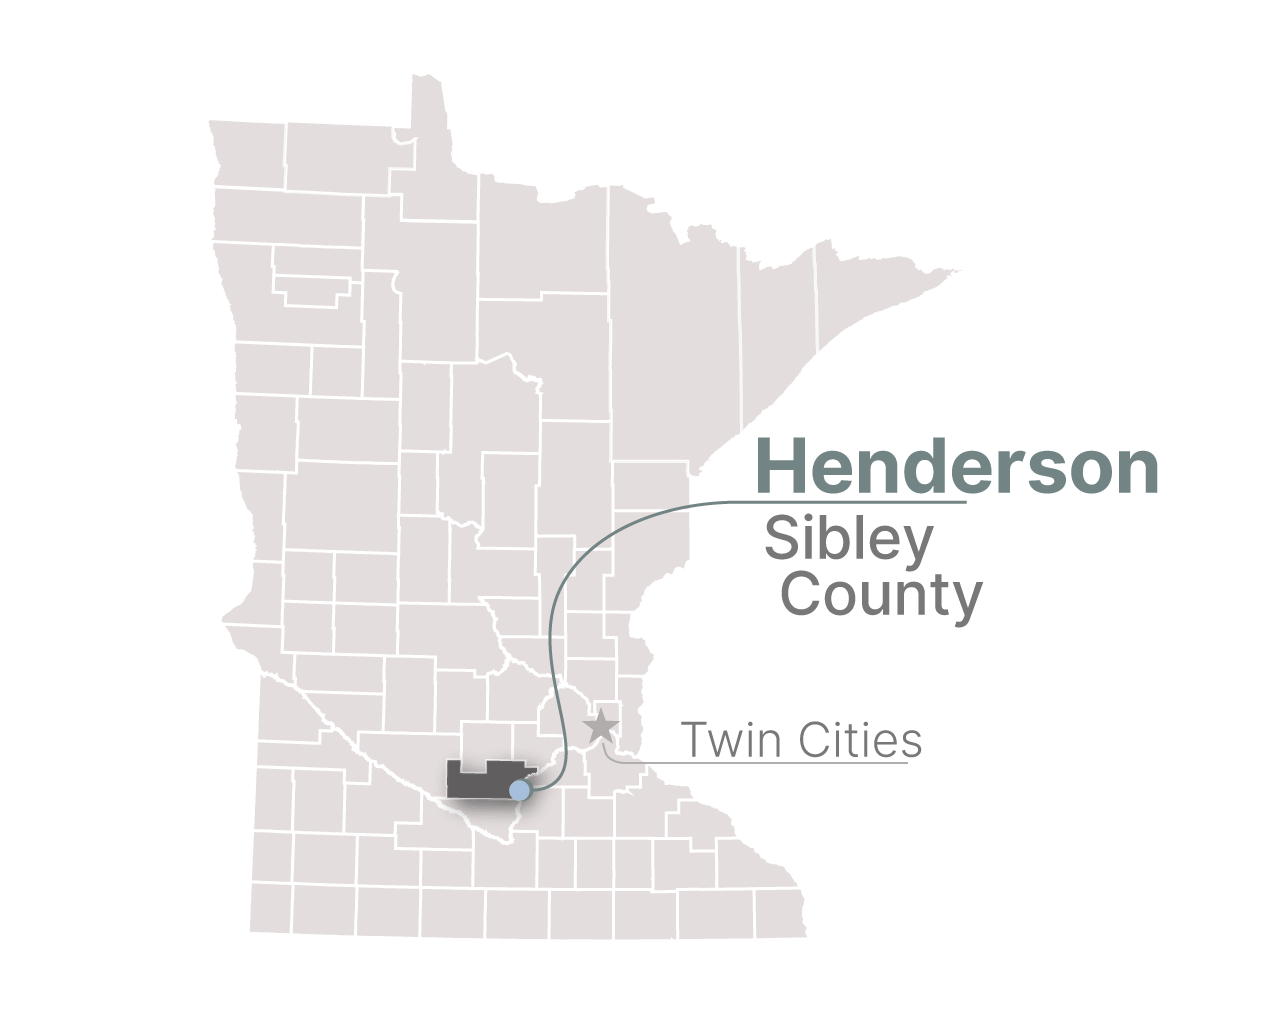 Henderson, Minn. in the southeast corner of Sibley County.